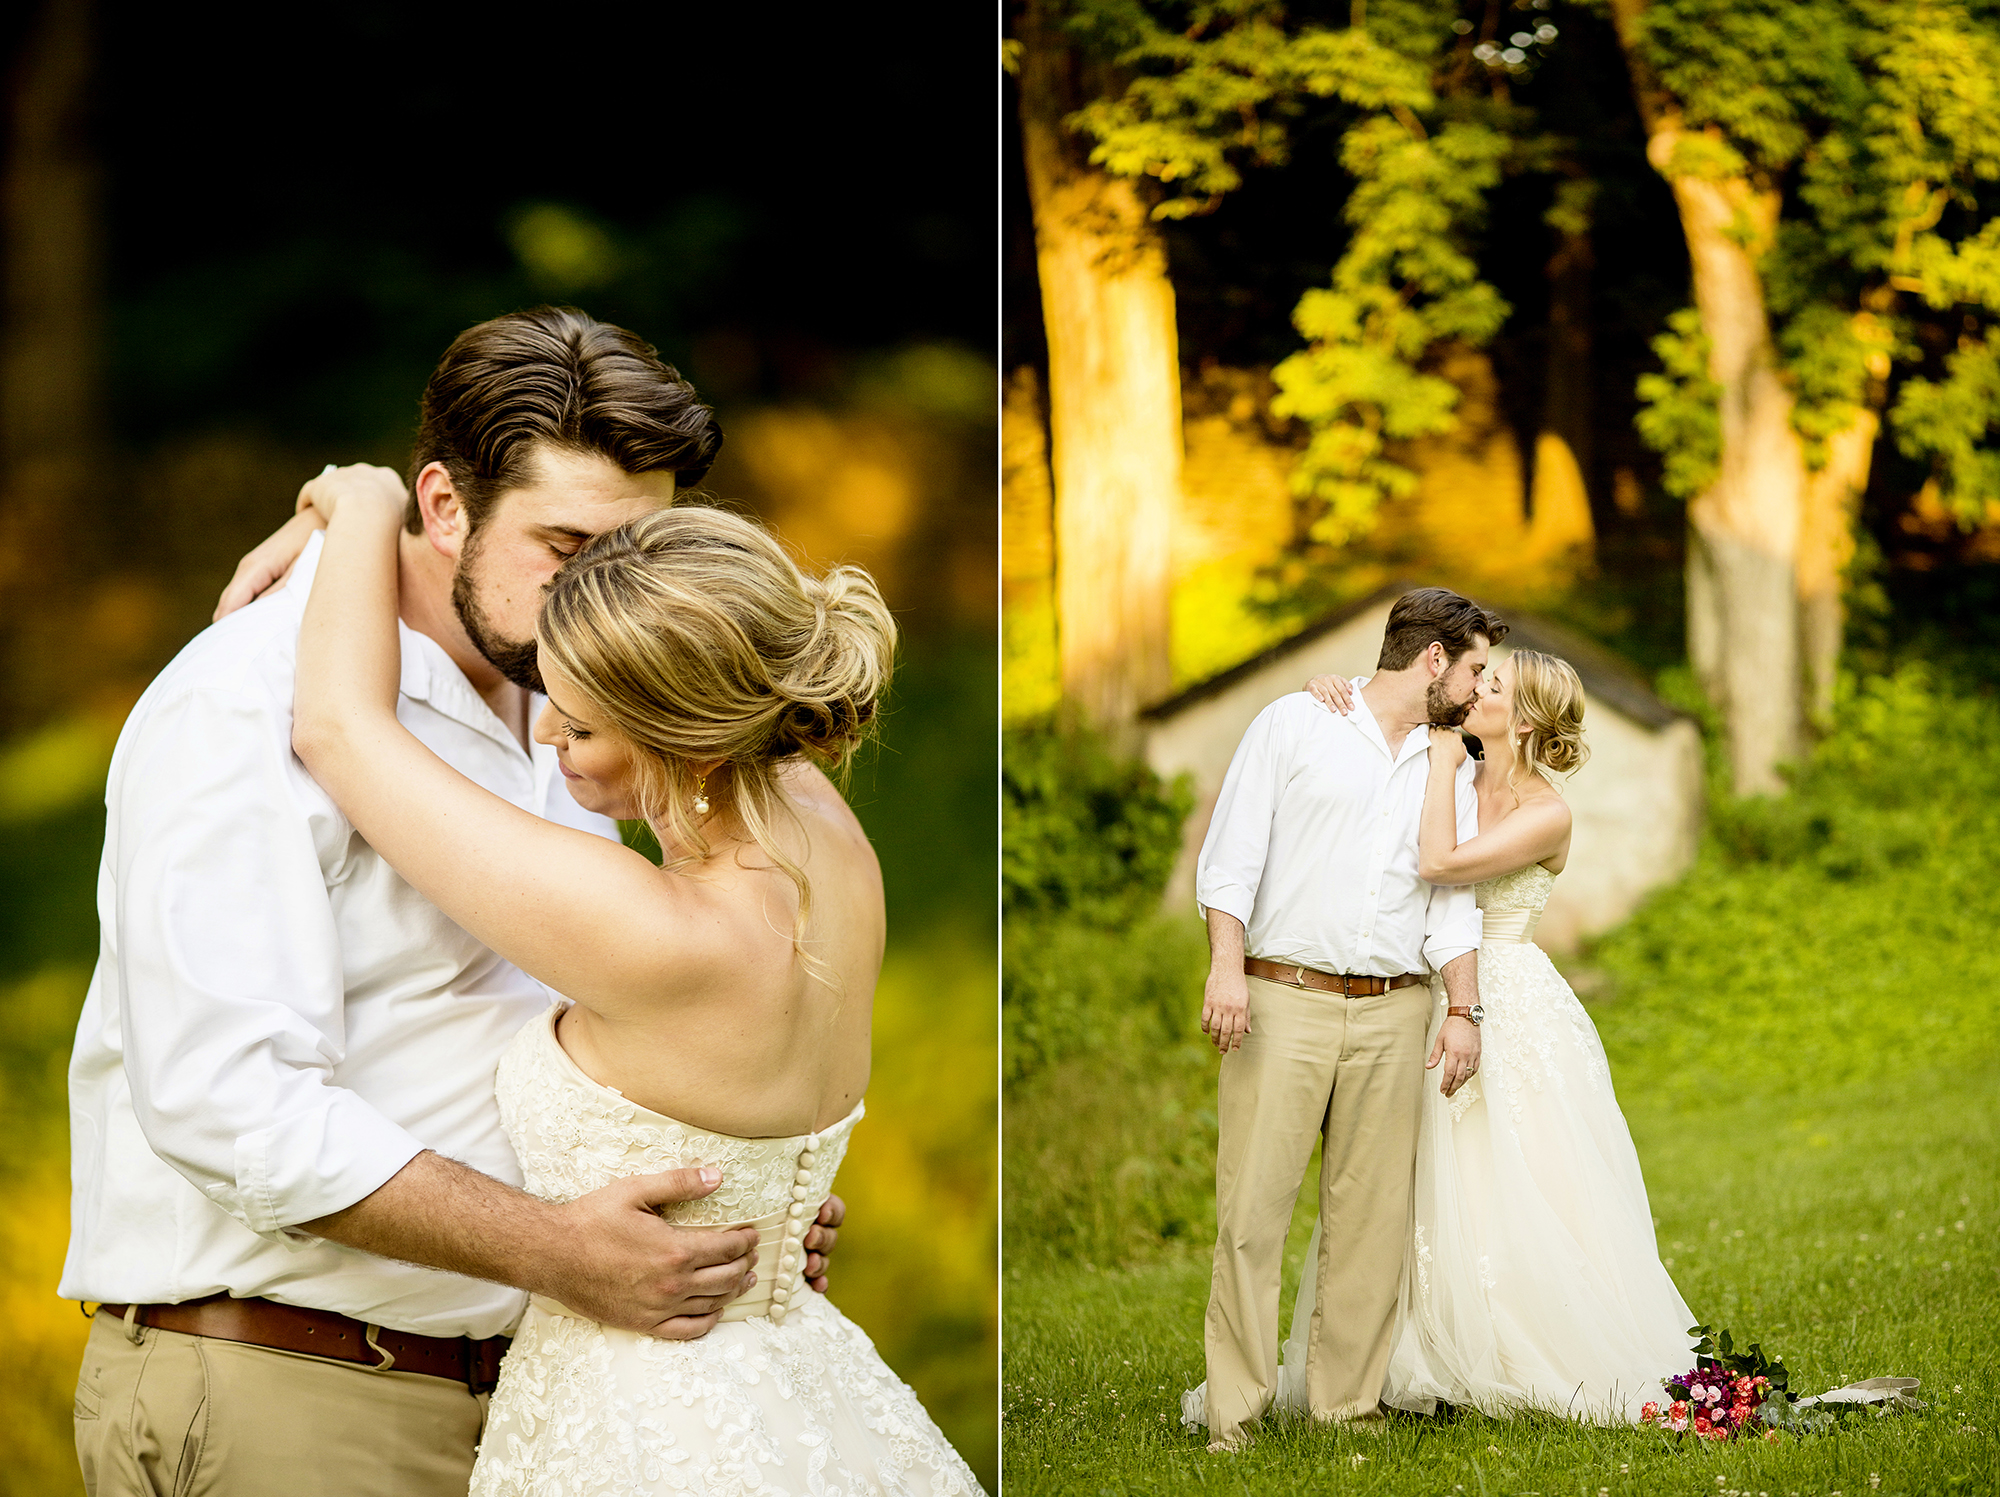 Seriously_Sabrina_Photography_Lexington_Kentucky_Romantic_Shakertown_Wedding_Portraits_Mazzetti16.jpg